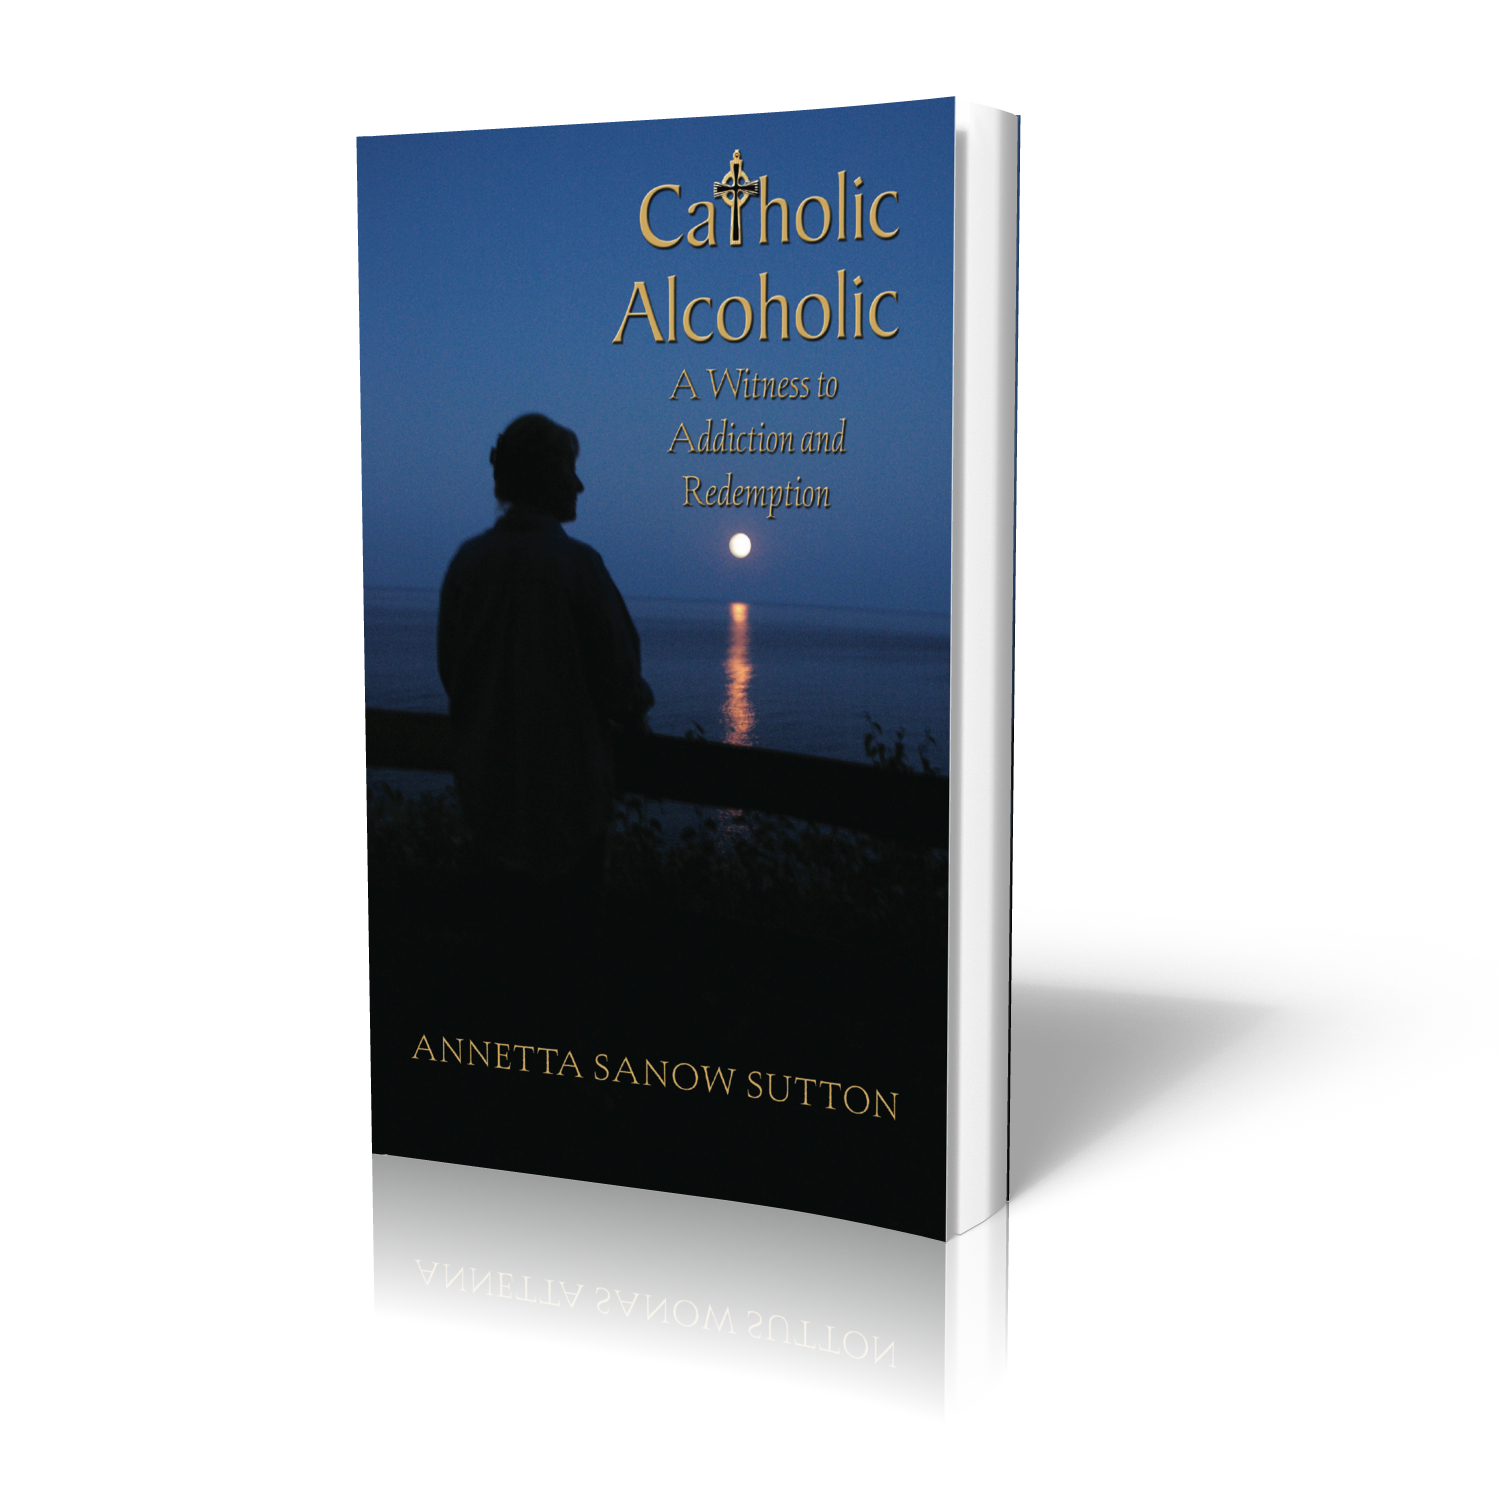 Catholic Alcoholic: A Witness to Redemption and Recovery